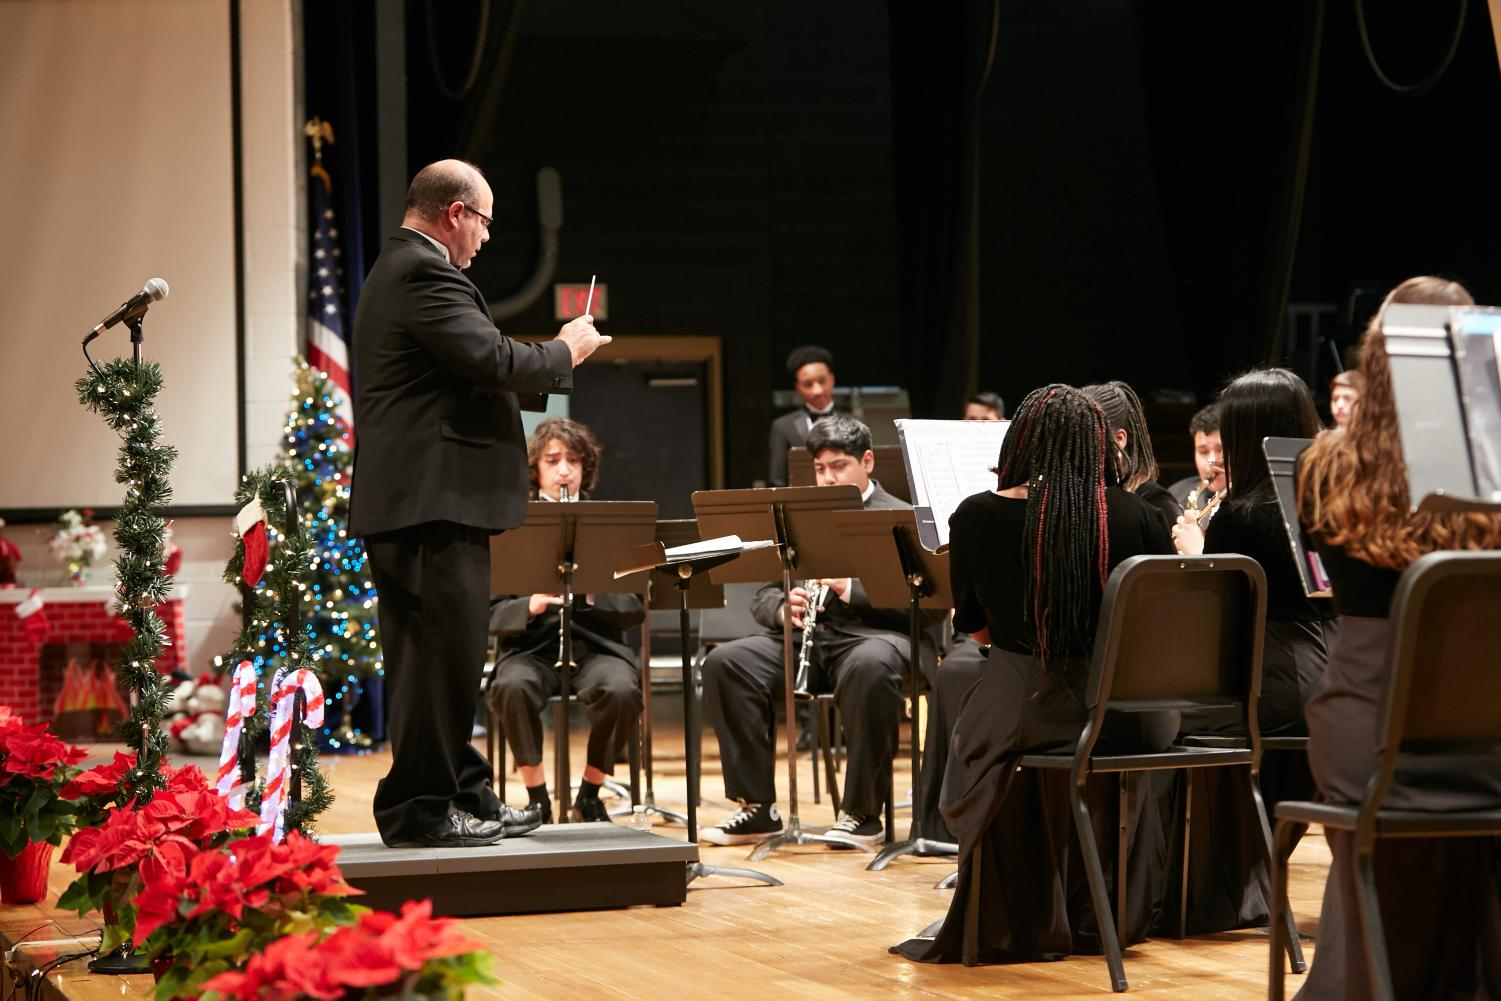 Band+director%2C+Michael+Basham+conducts+the+band+in+their+holiday+concert